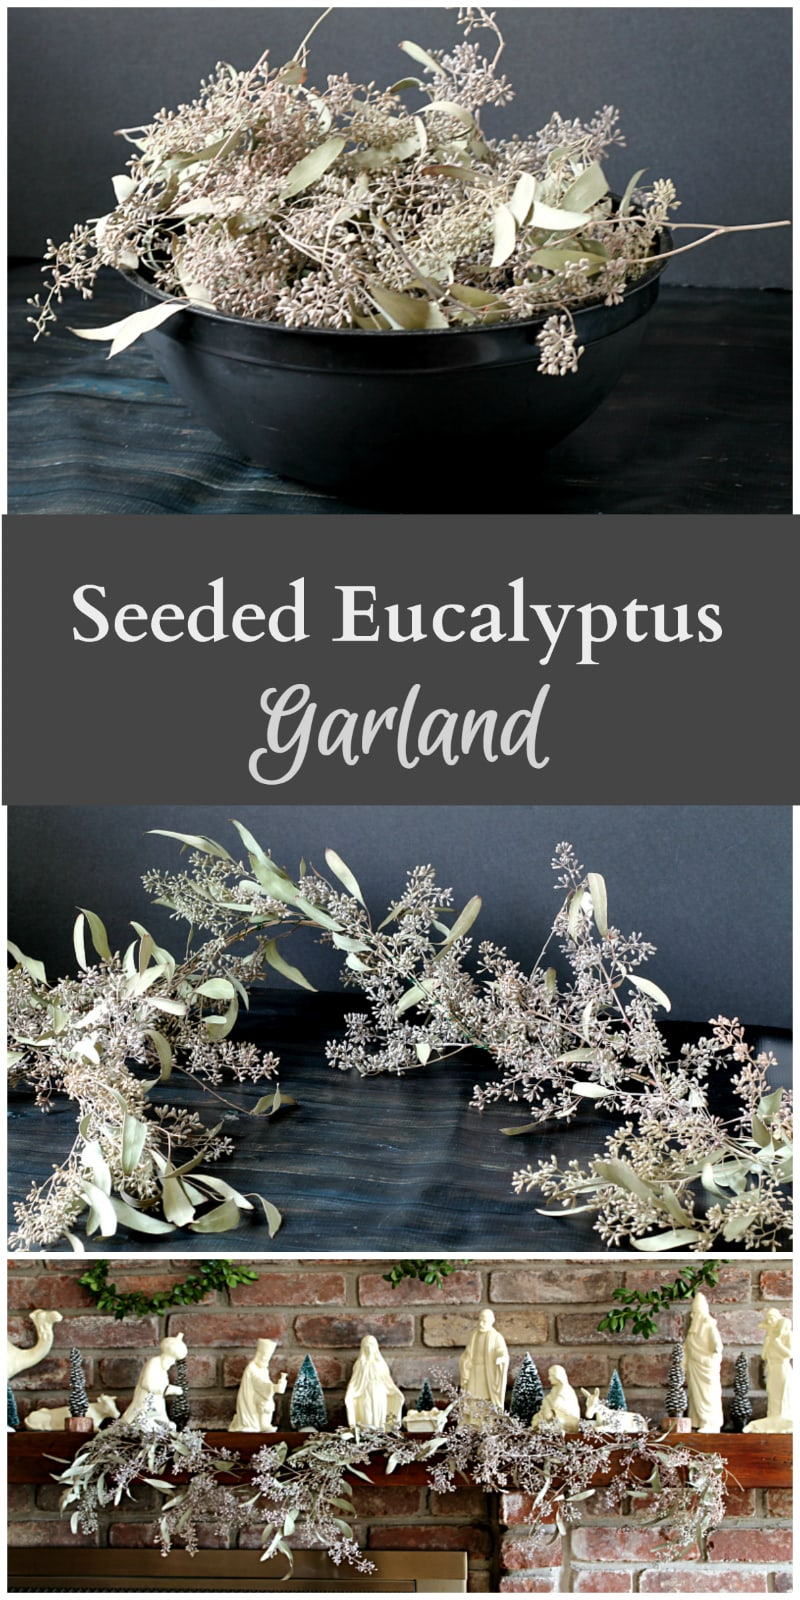 Seeded eucalyptus garland collage